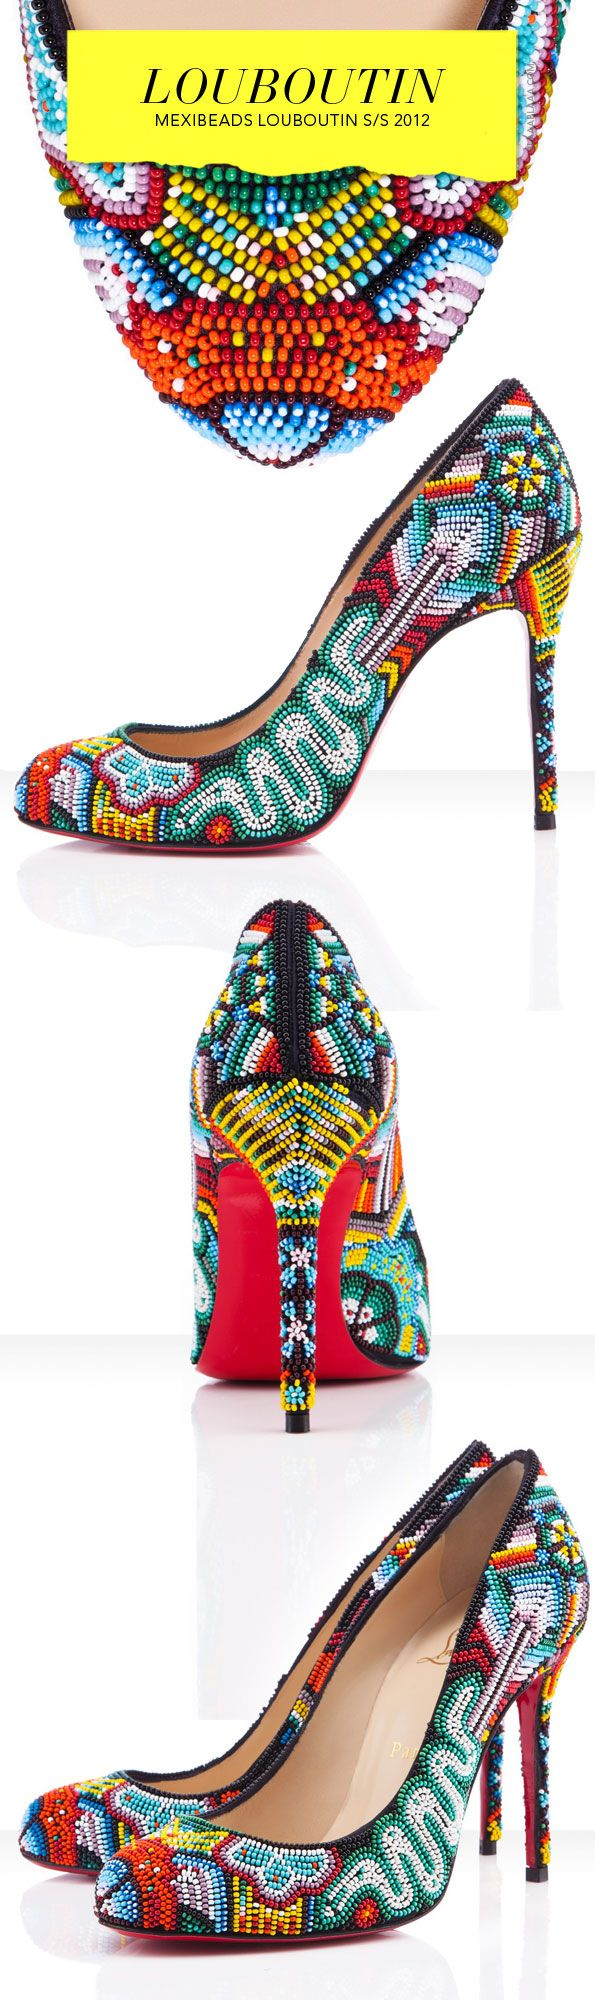 These Are Gorgeous What A Work Of Art #shoes, #women, https://facebook.com/apps/application.php?id=106186096099420